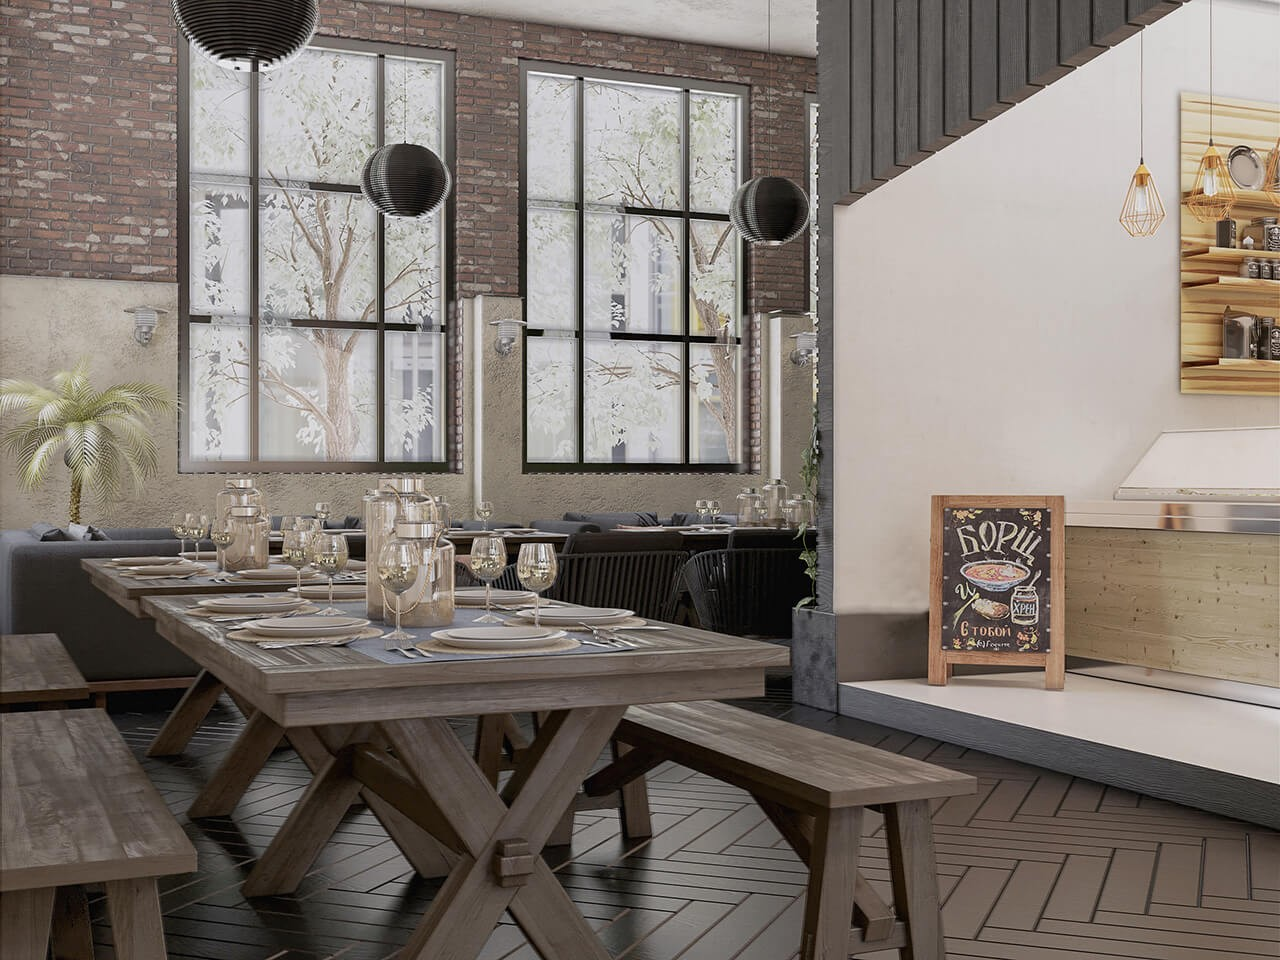 The Interior Design of a Rustic Café and Restaurant